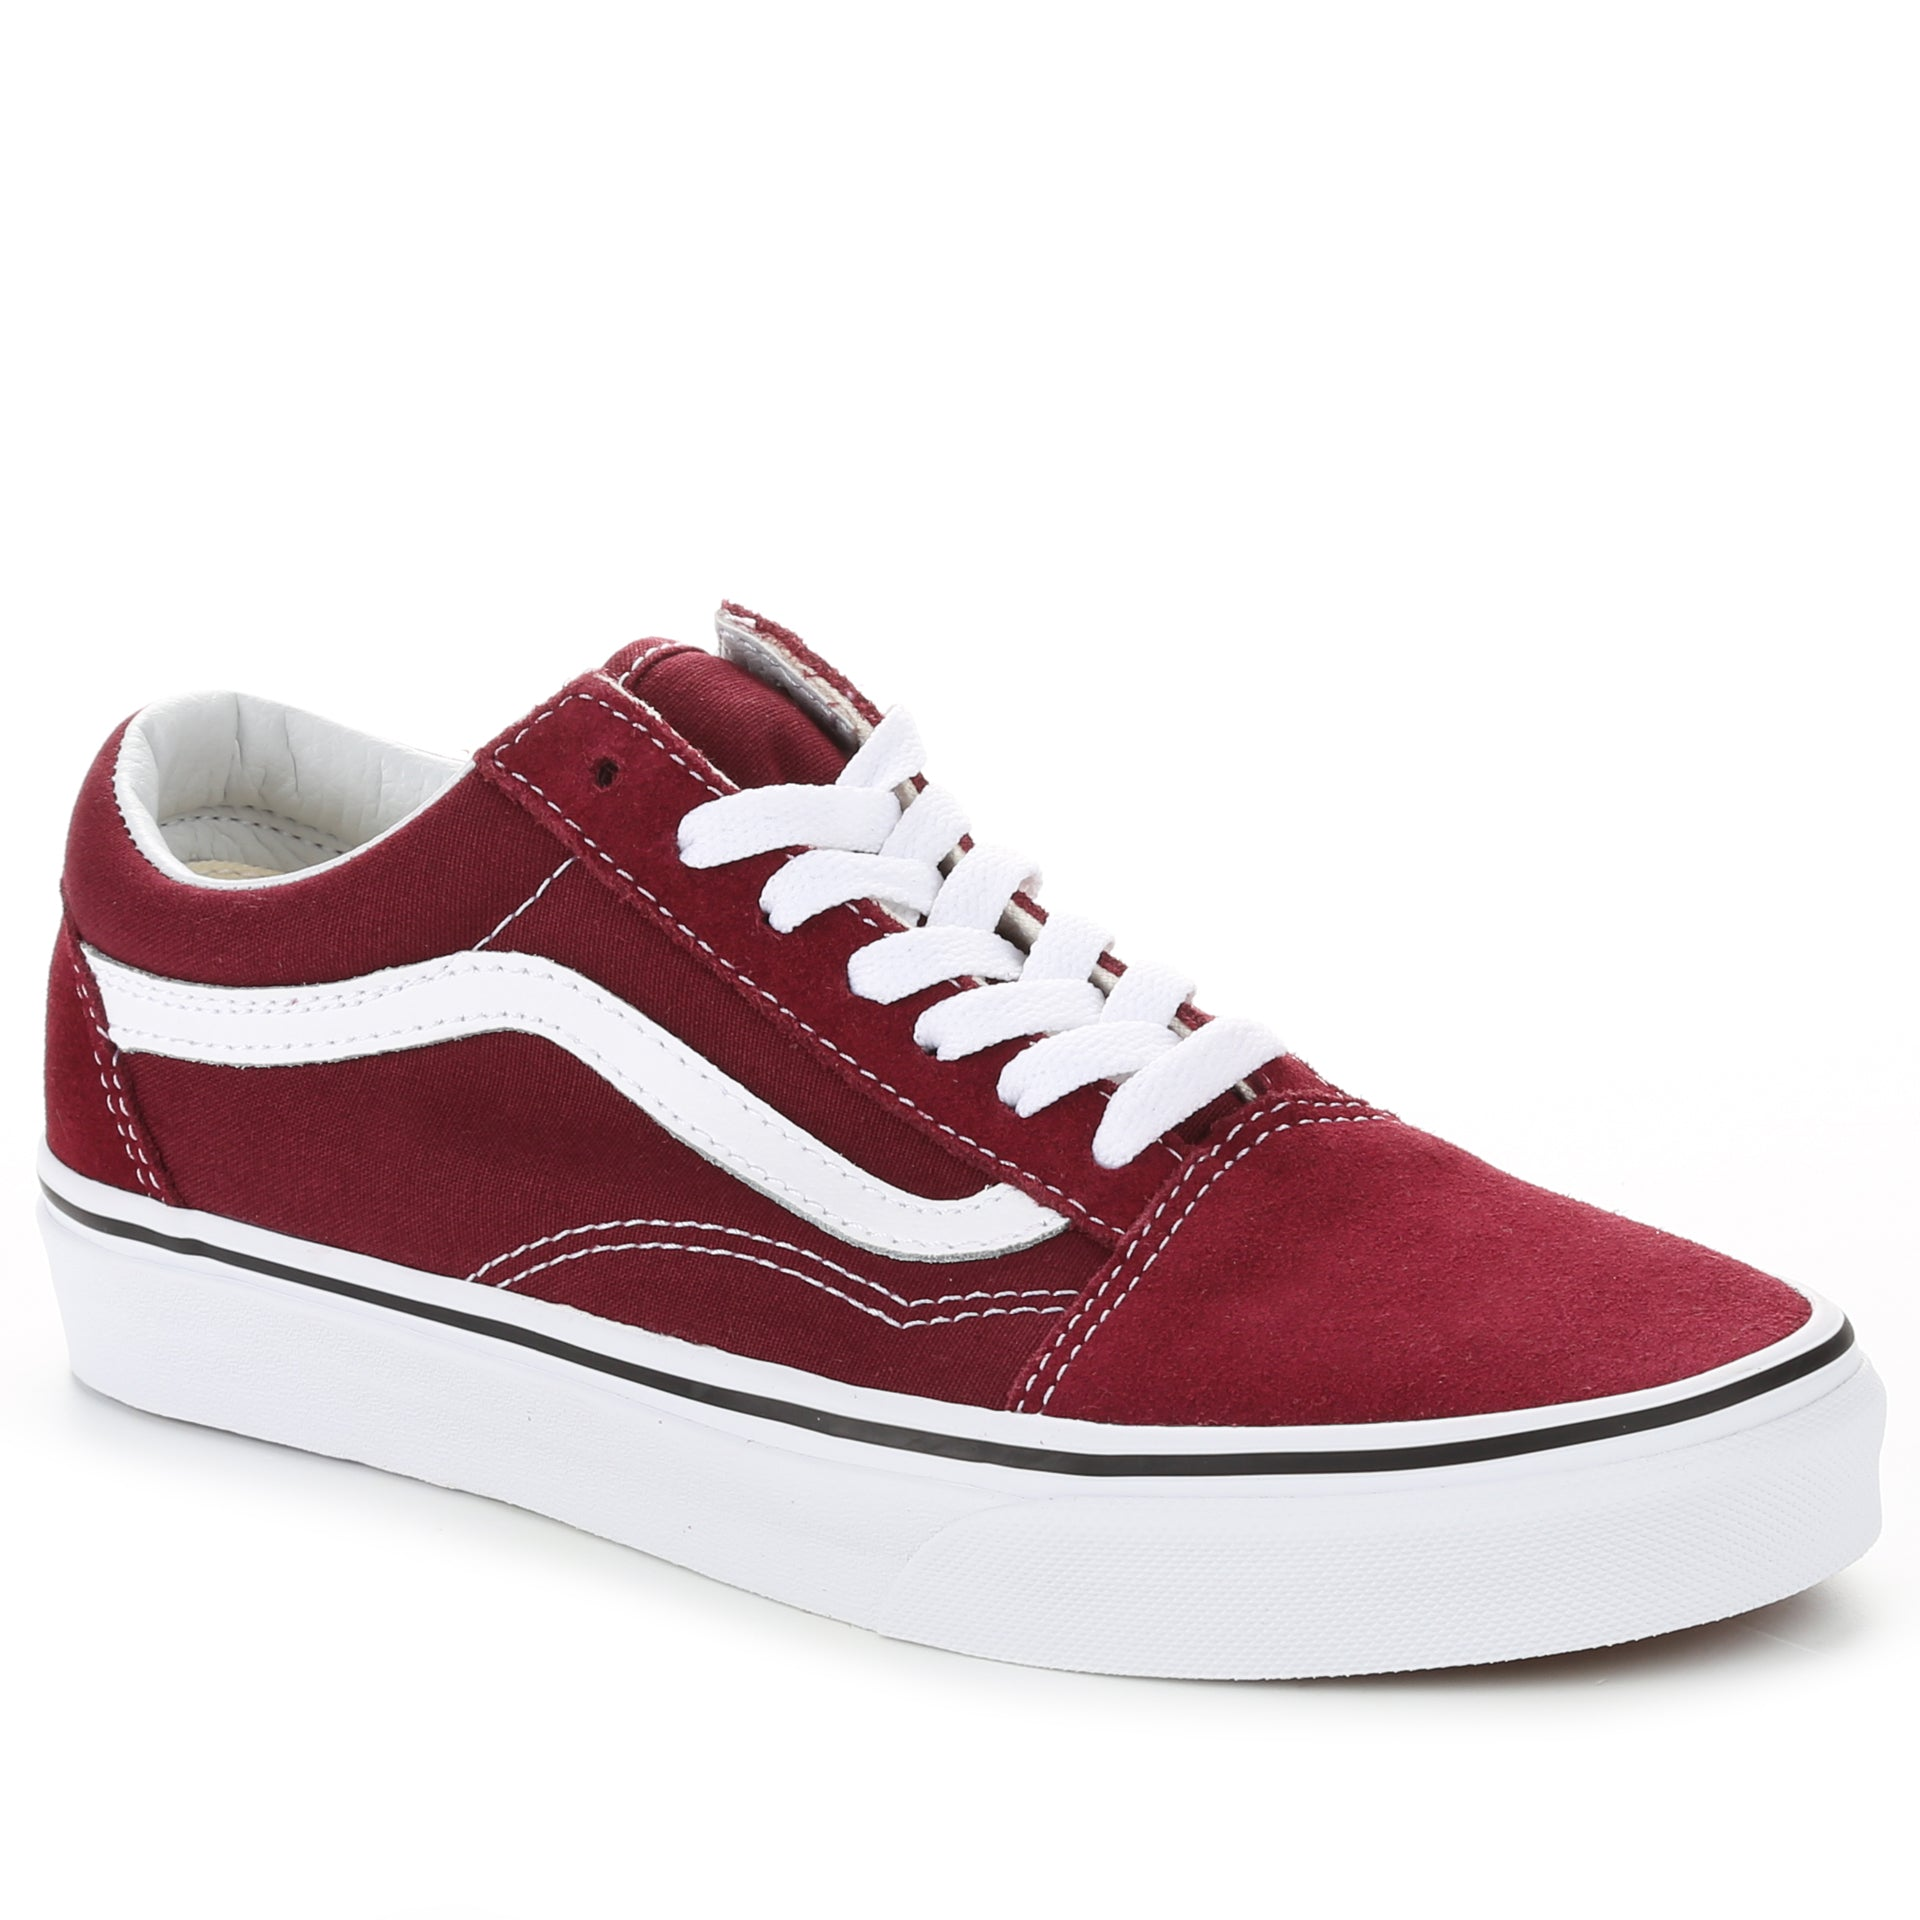 3cf26c37c1487a Vans Old Skool - Burgundy True White - New Star